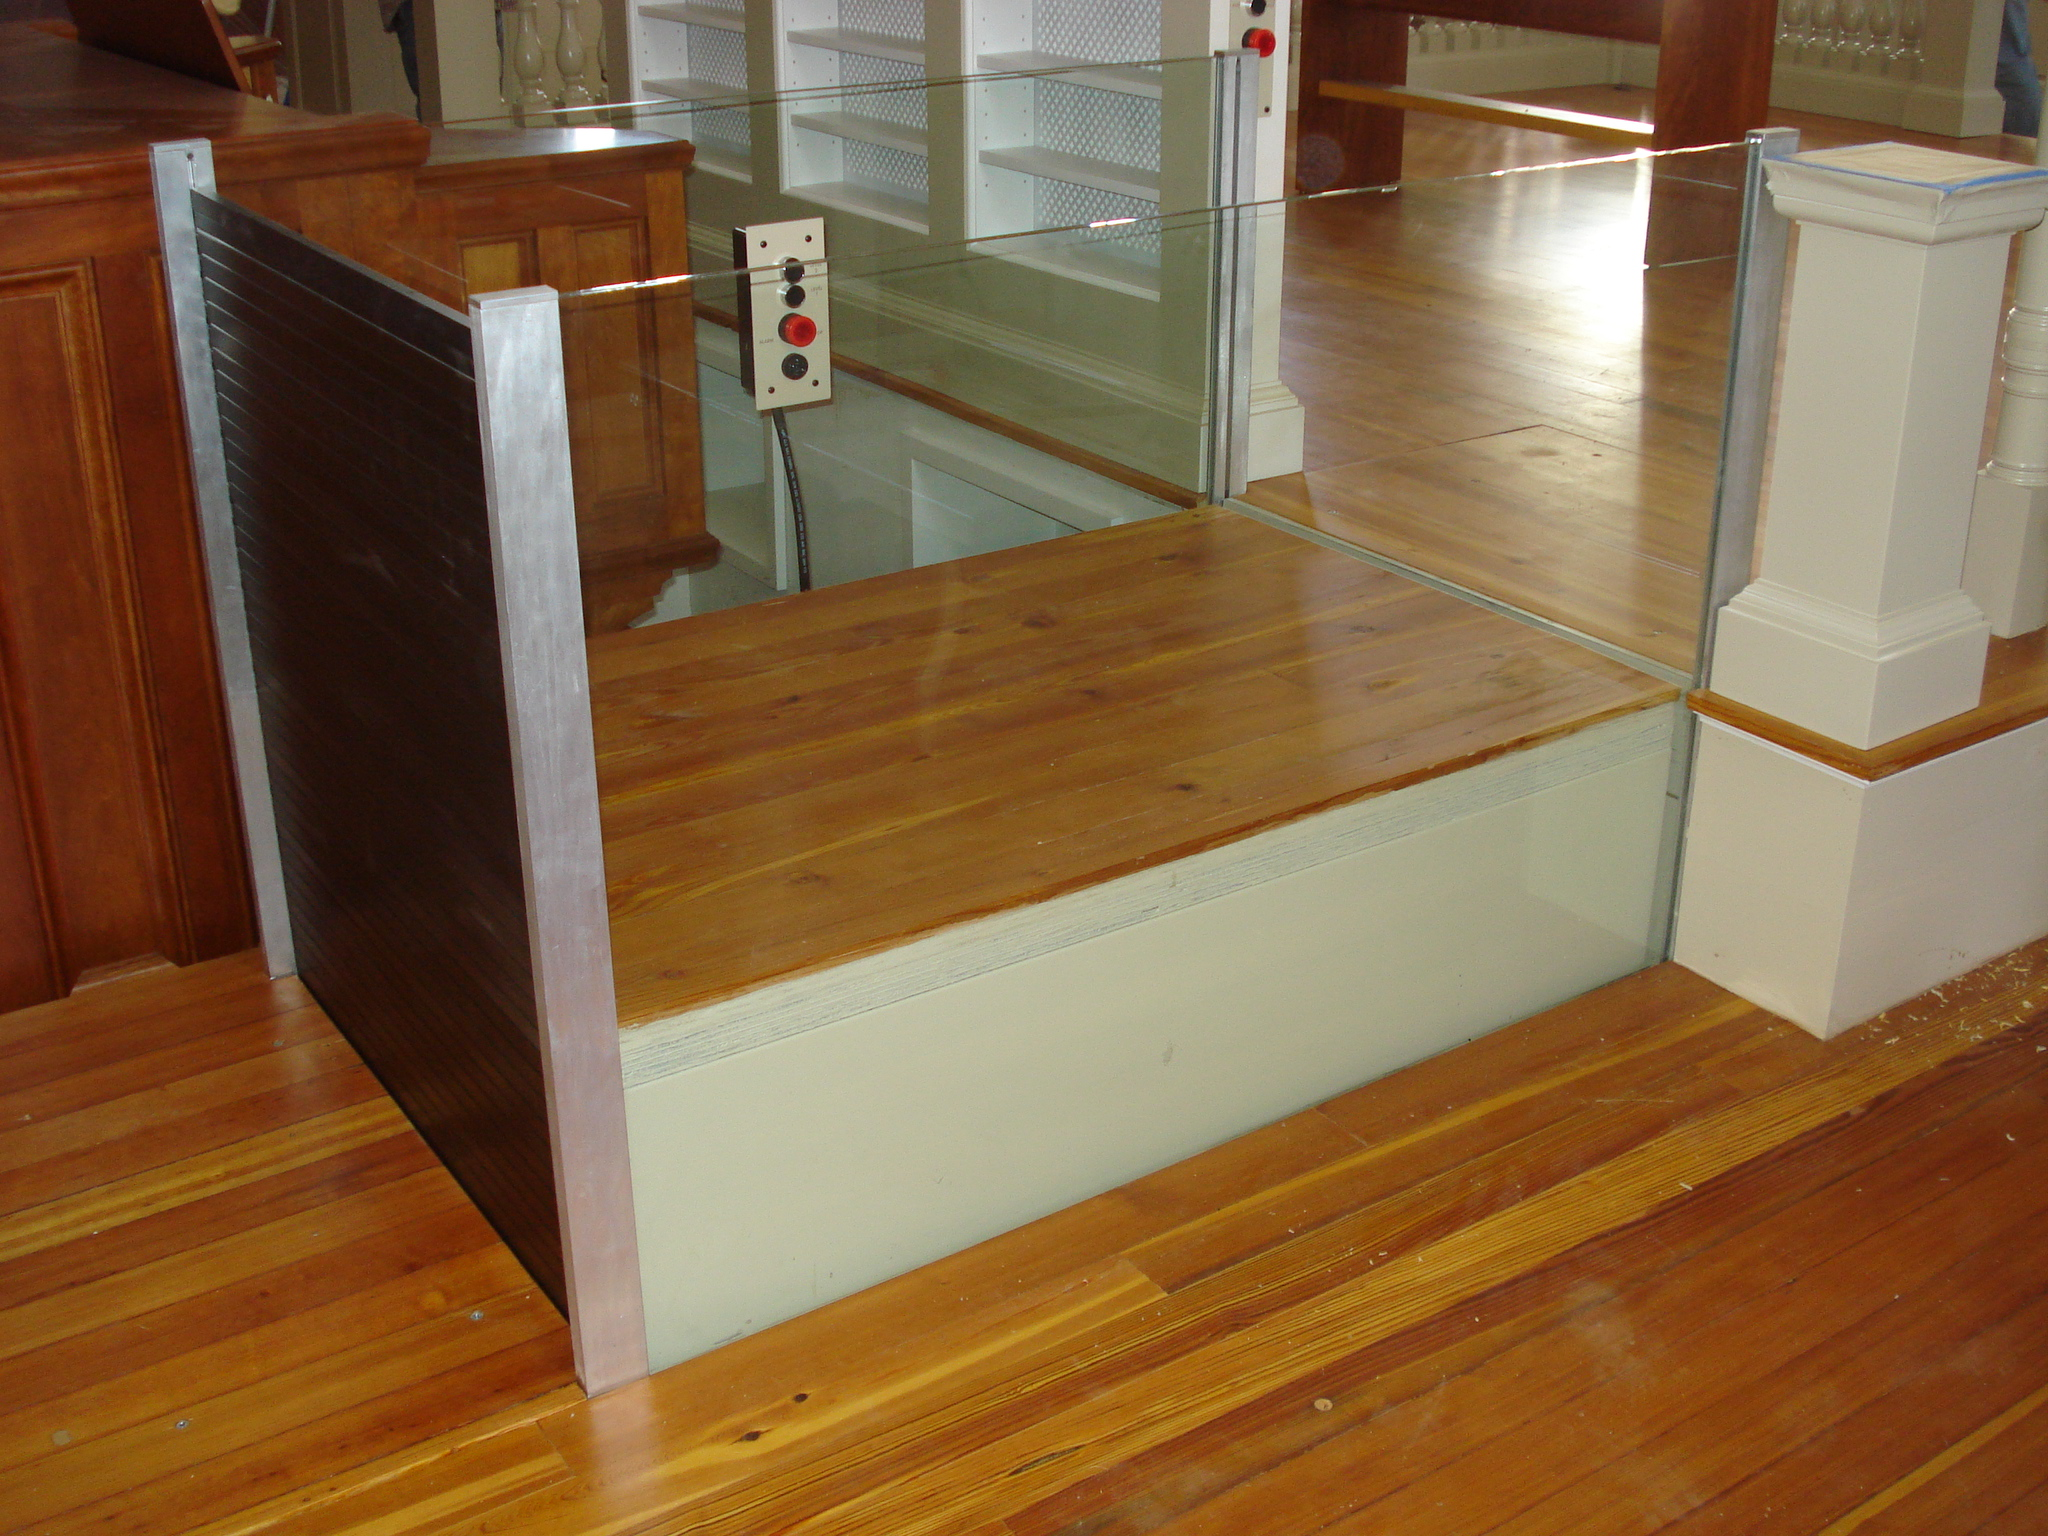 Side view of the lift in a church application with the lower level roll-up barrier in the  up position and the upper level barrier is in the down position, The lift is ready to receiva a passenger to run the lift down to access the lower level where the organ is located. Lift utilizes glass stationary sidewalls to blend in with surrounding aesthetics.